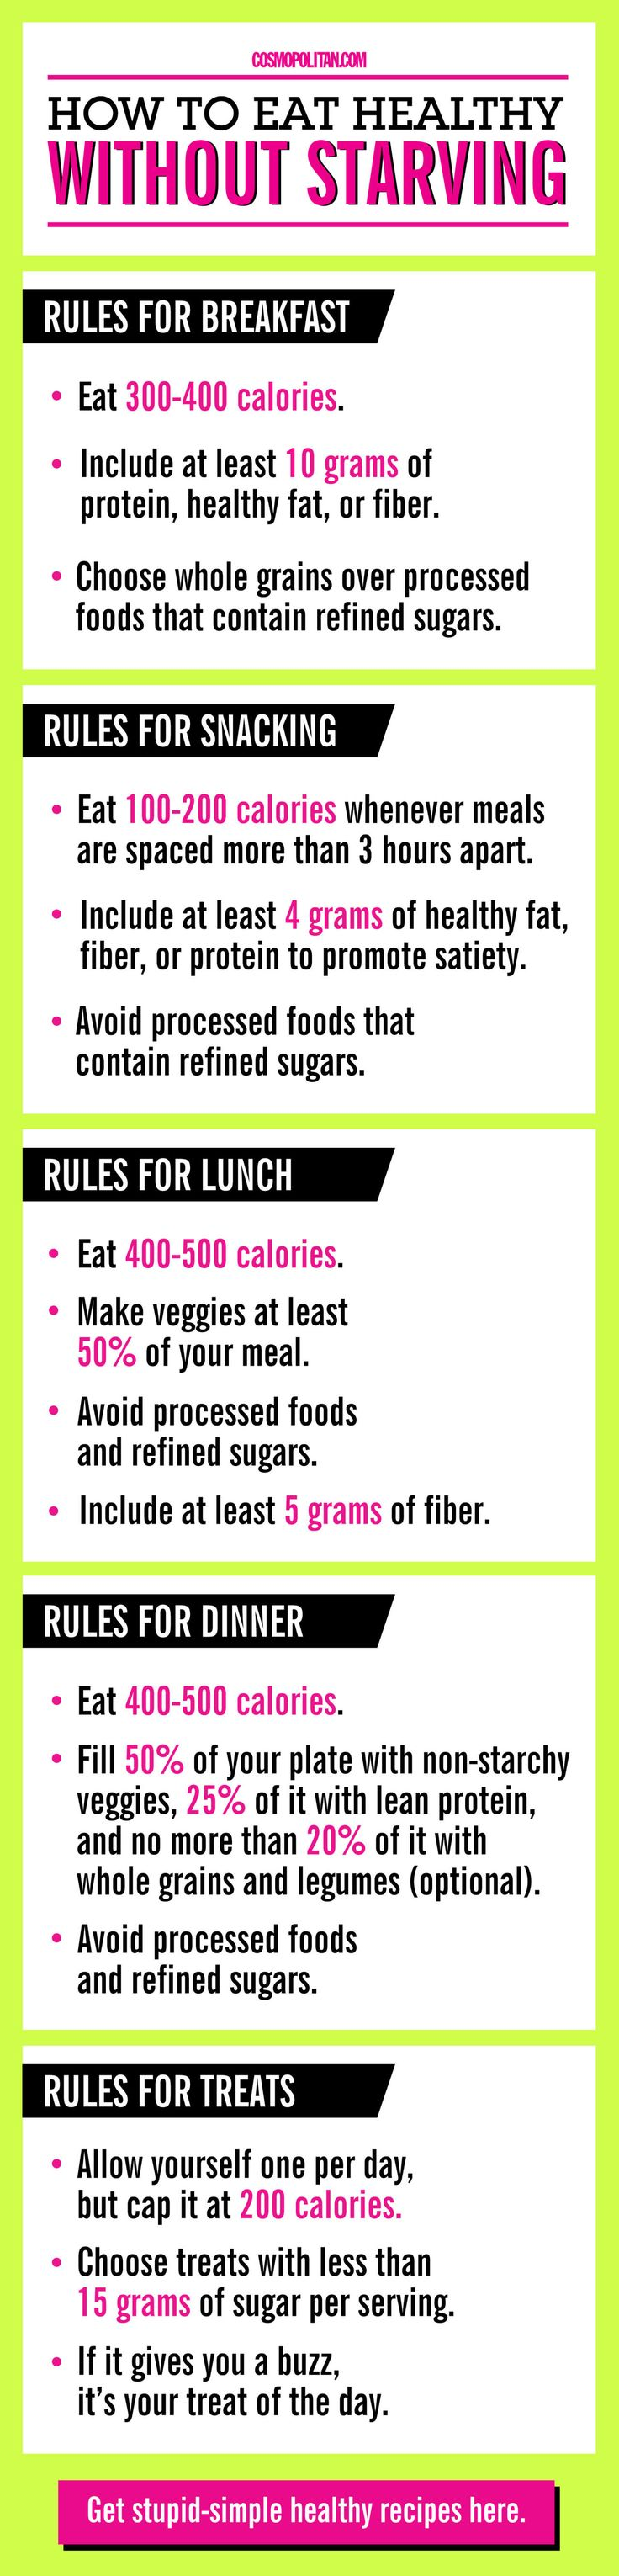 16 Healthy Eating Rules You Should Always Follow